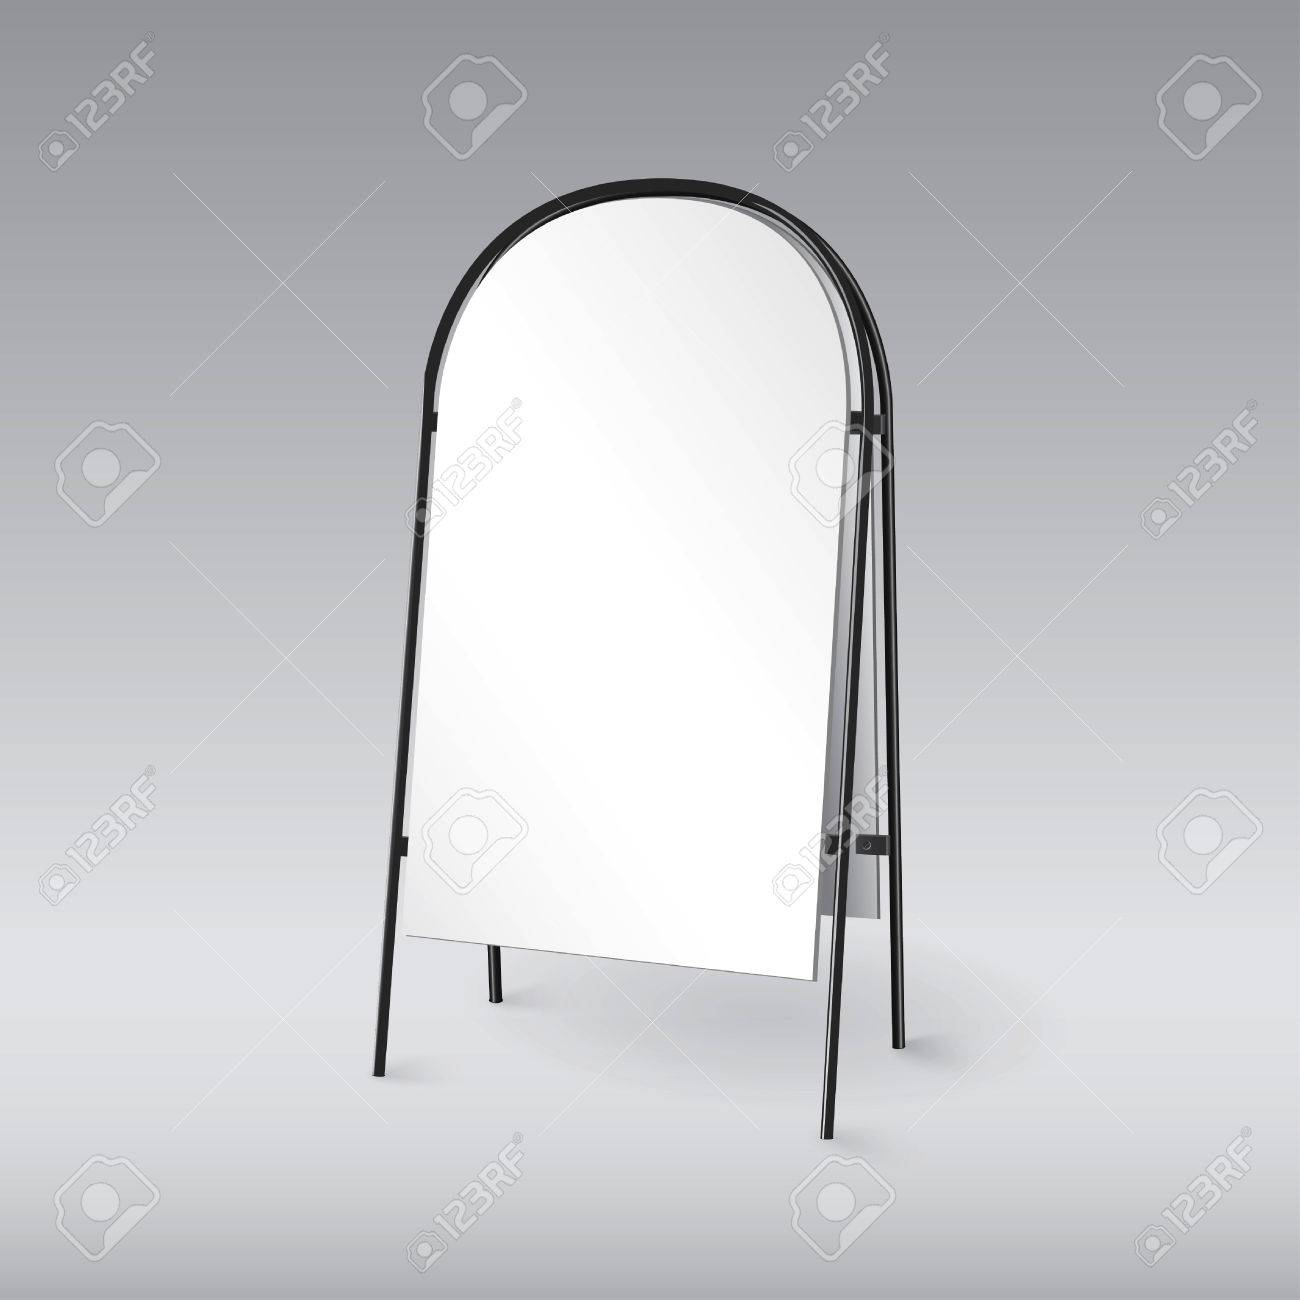 Blank Sandwich Board Isolated, Template For Your Design Royalty Free ...